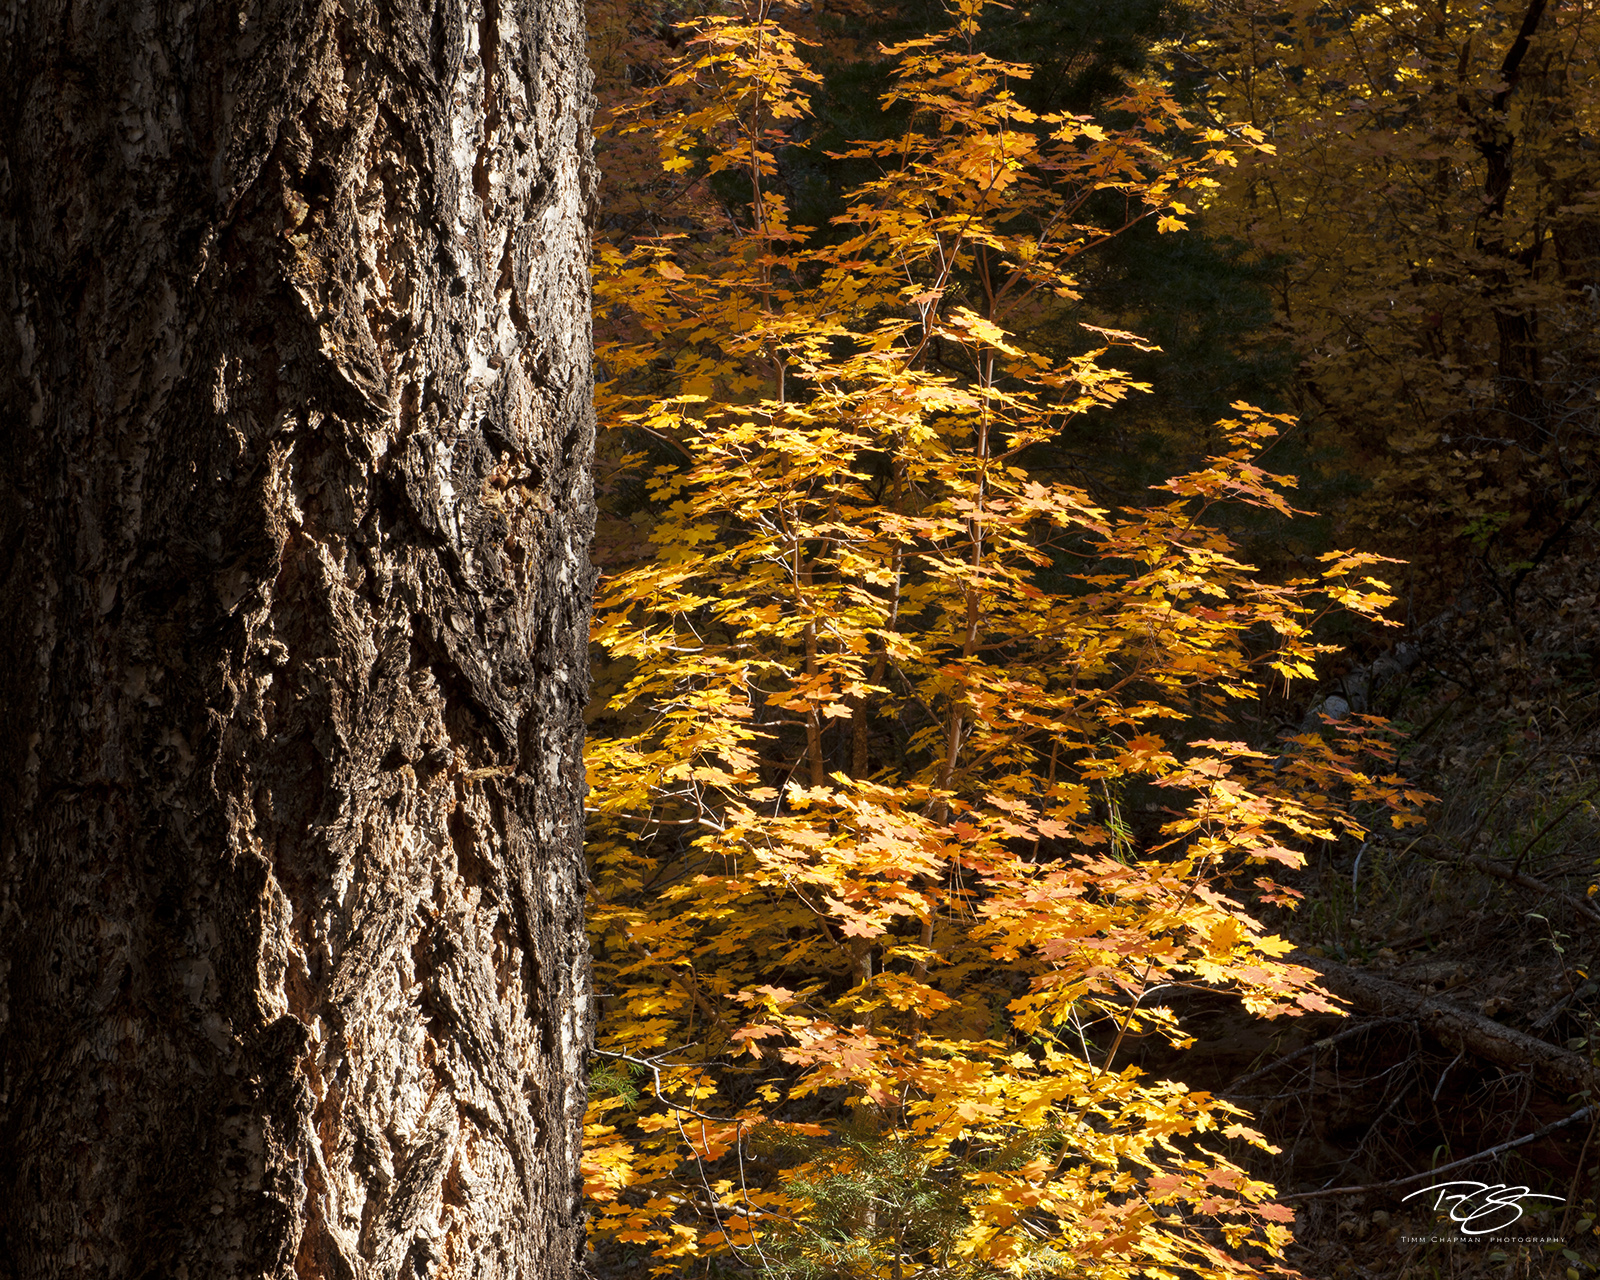 Arizona, Oak Creek canyon, West Fork, Call of the Canyon, northern arizona, moody light, orange, bigtooth maple, morning light, dramatic light, fall colours, autumn, fall colors, fall, colors, bark, photo